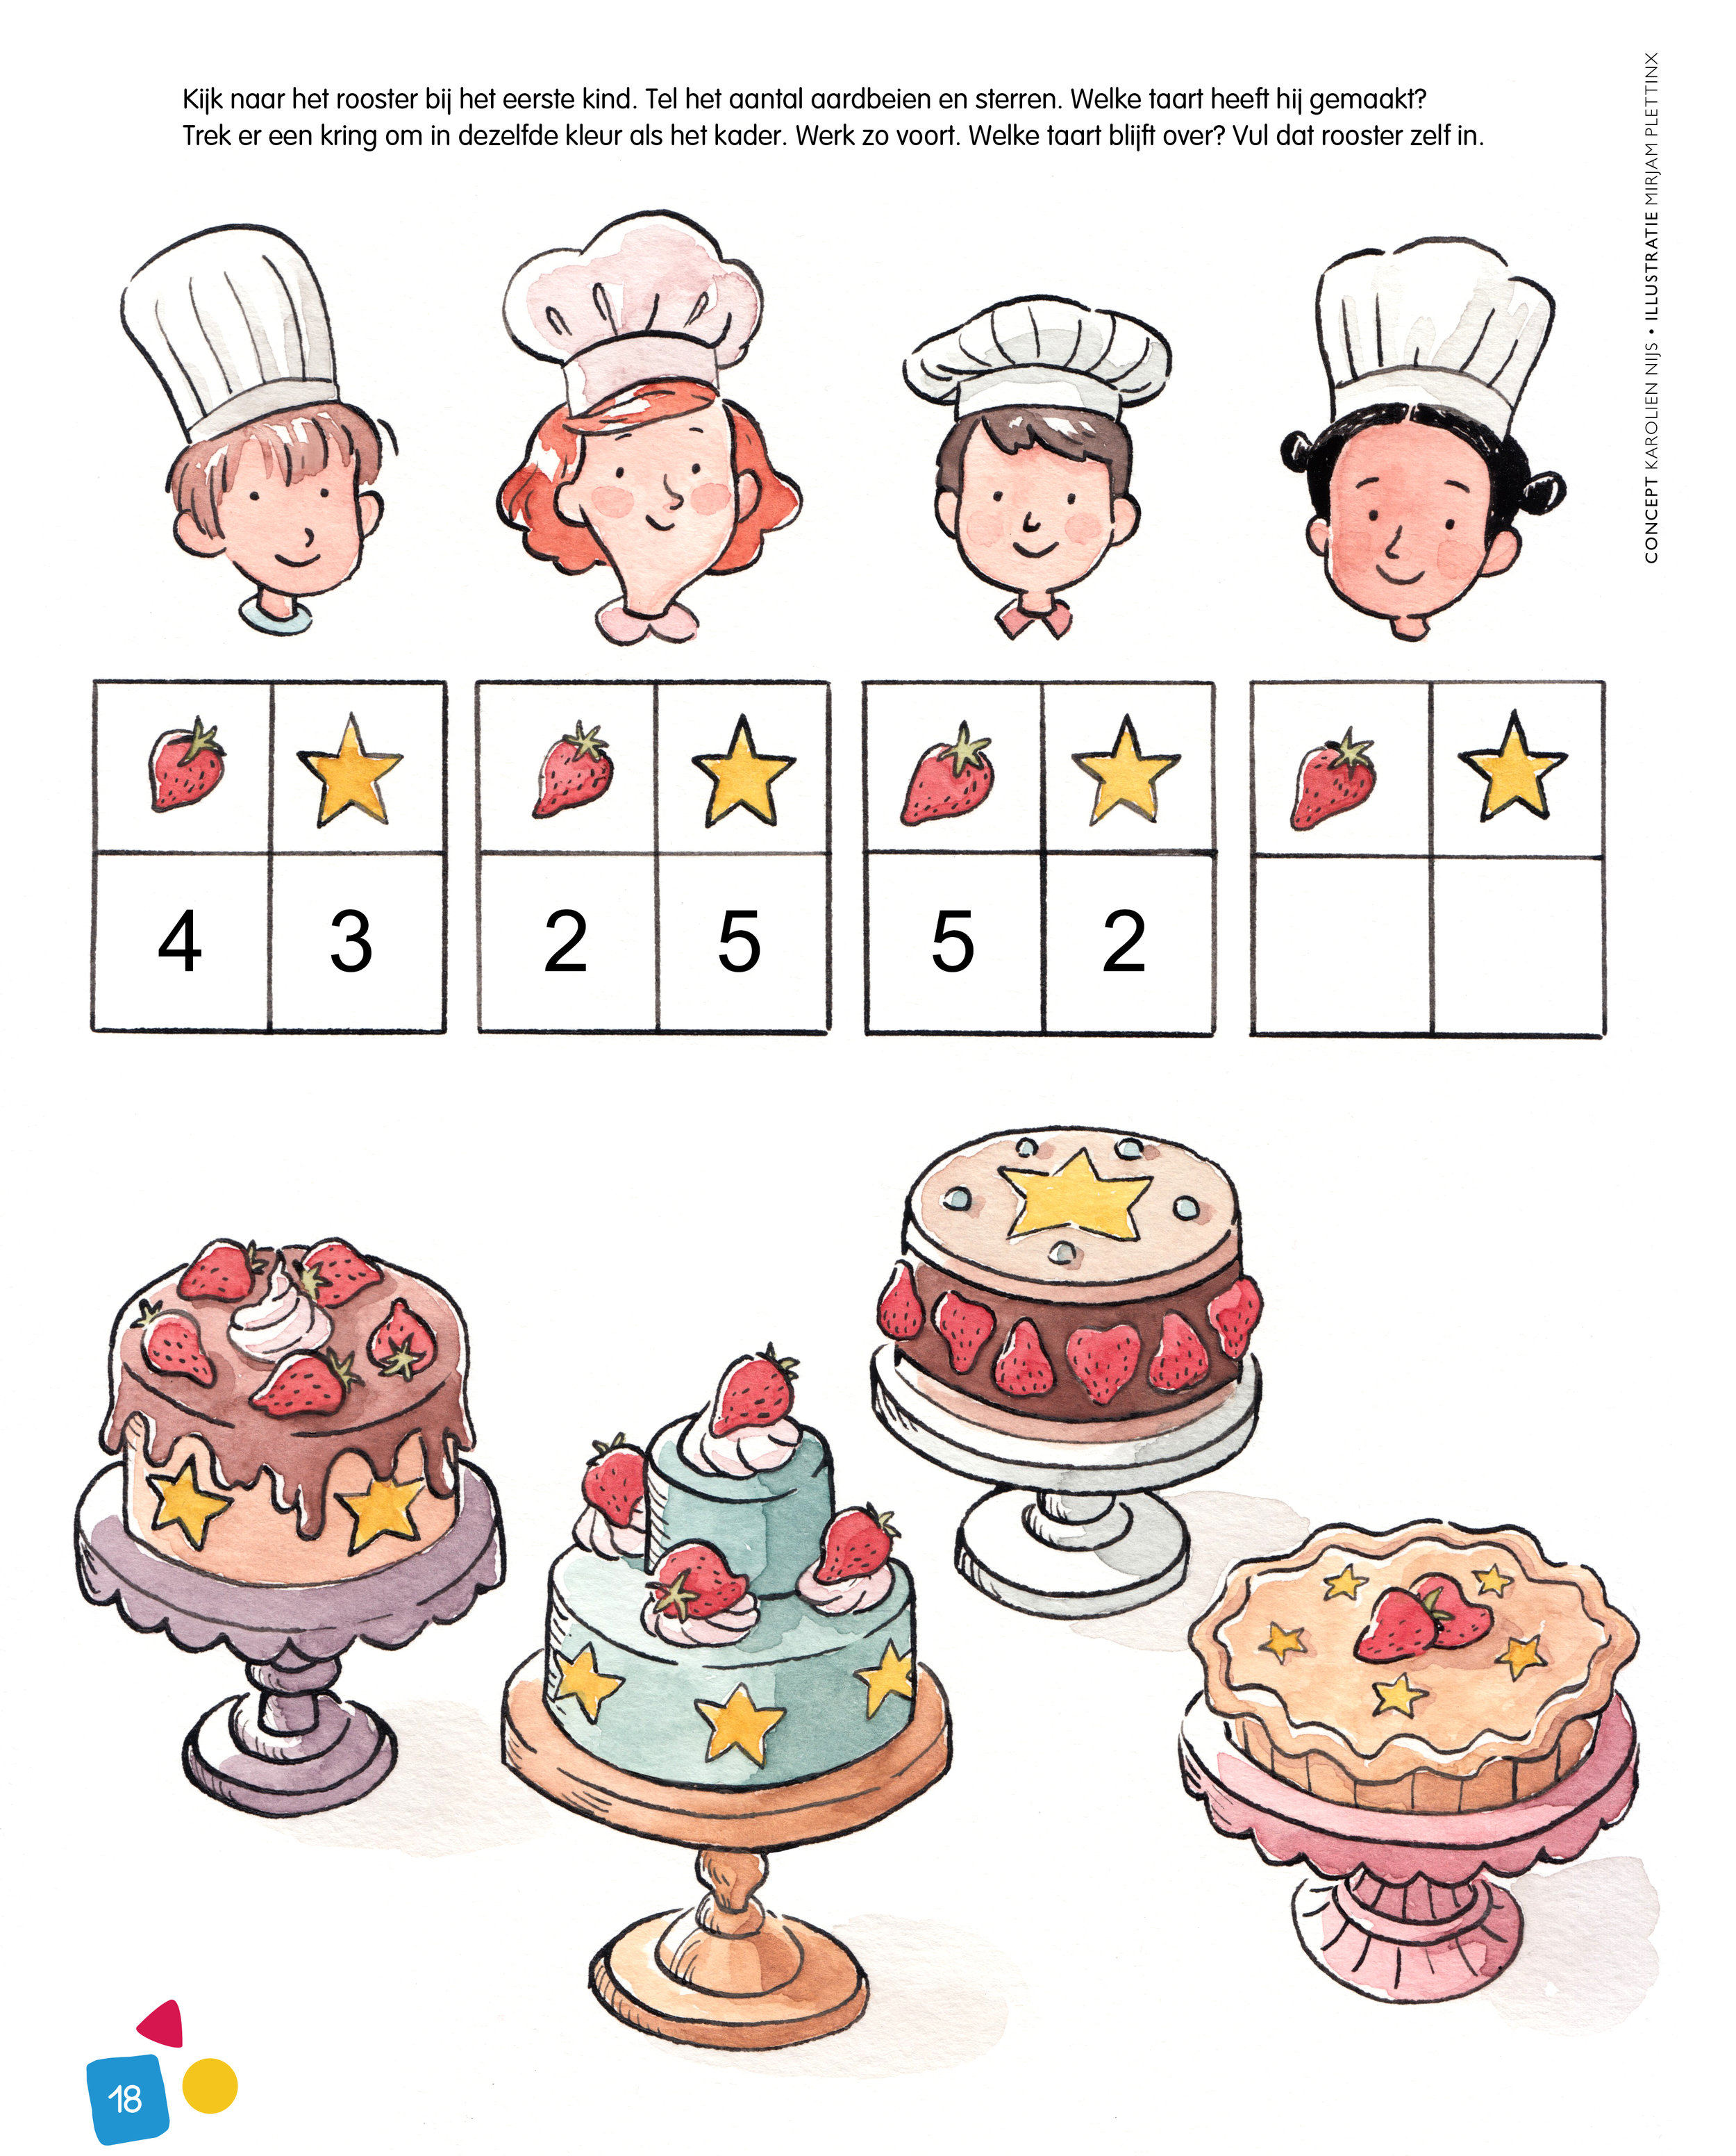 Chefs and cakes for Doremi.